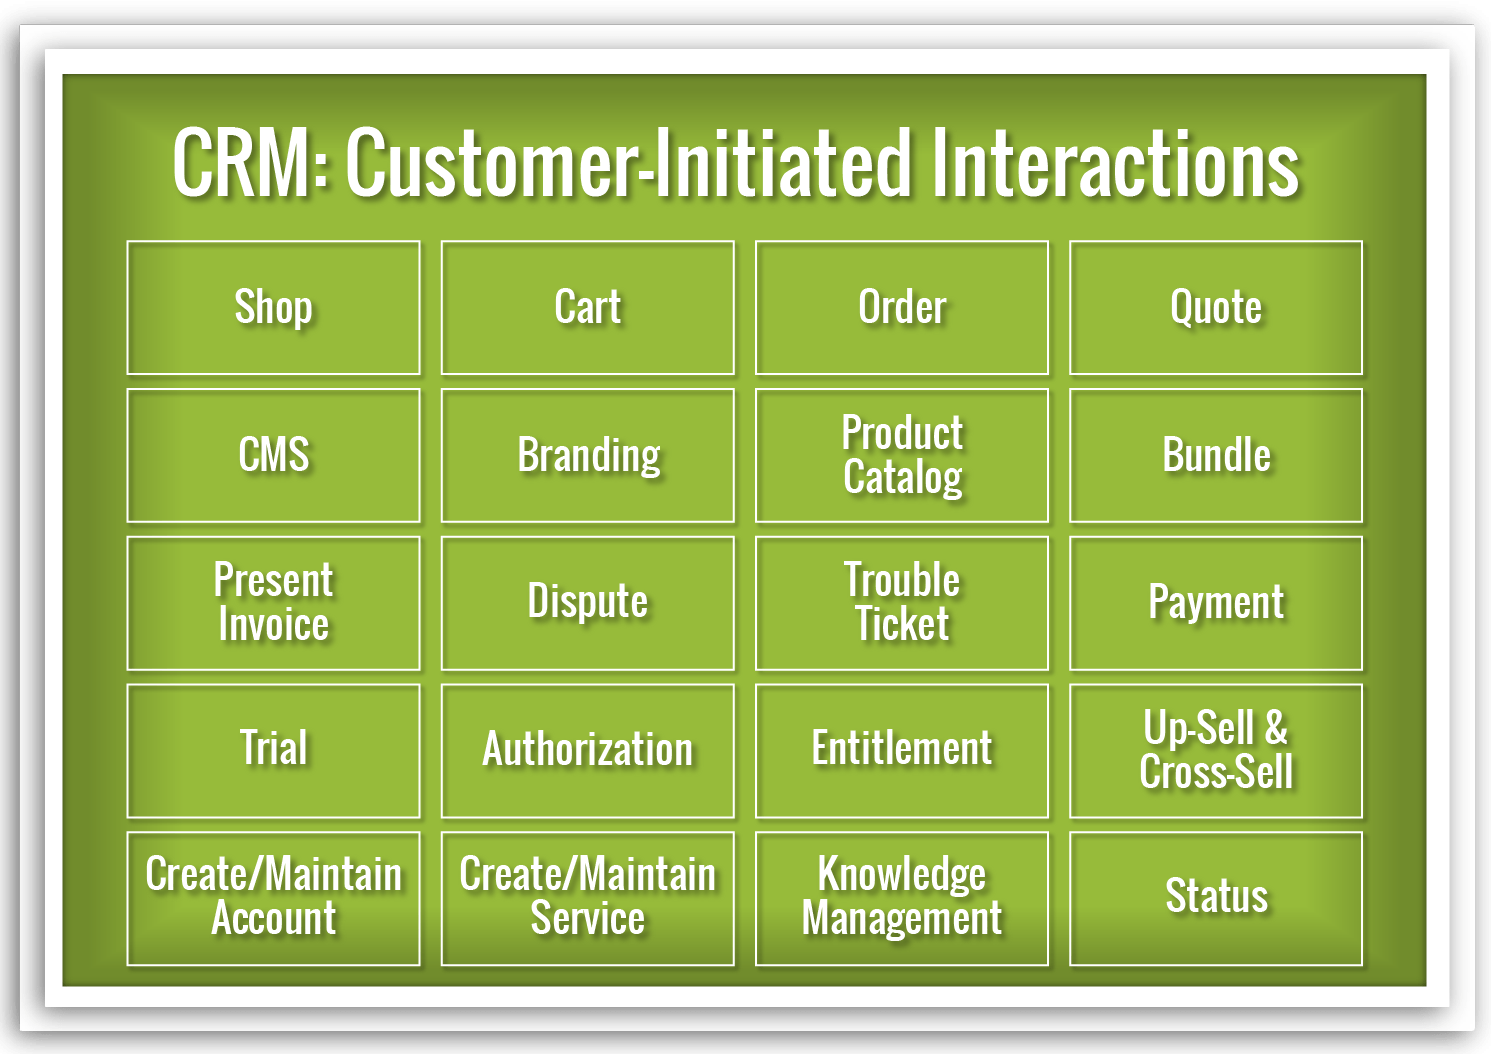 CRM - Customer-Initiated Interactions